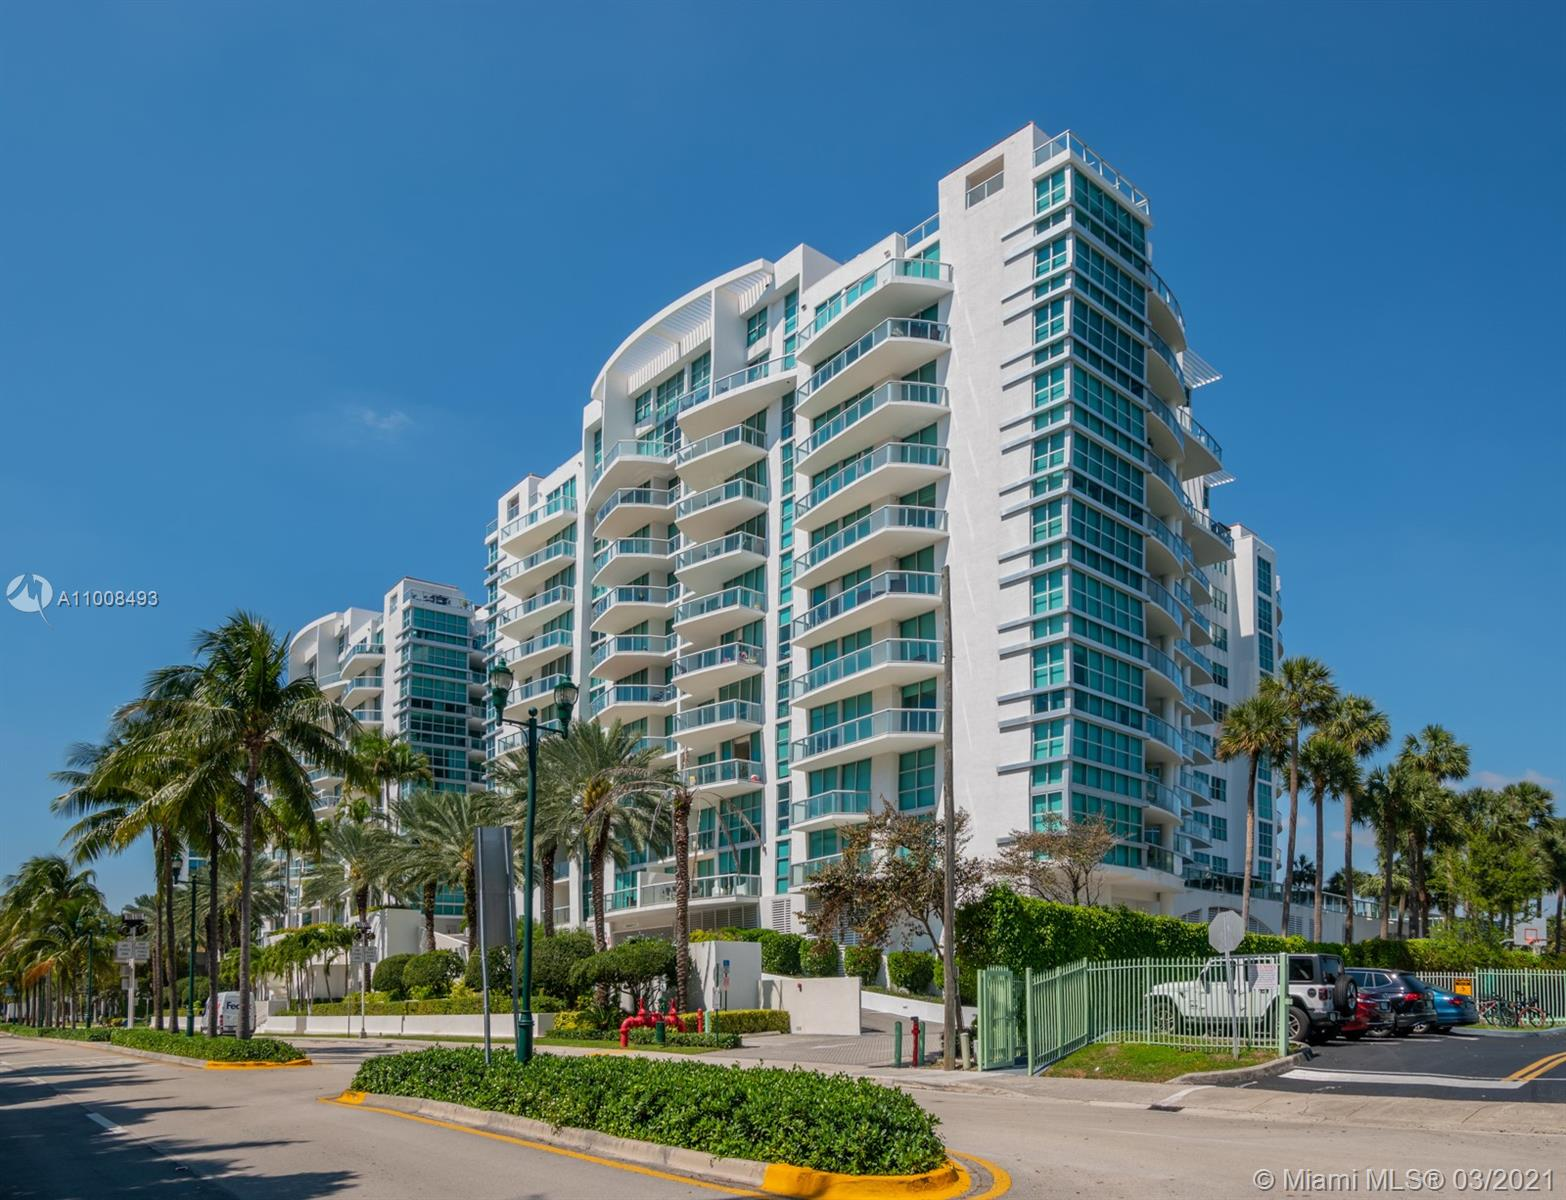 Spectacular 2 story unit with balcony in the prestigious Aventura. It's a spacious home in a building. This unit will provide you a house living sensation. 3 bed/3 1/2 bath, large open dinning and living spaces, high ceiling, open gourmet kitchen, stainless steel appliances, 2 parking spaces, amenities include pool, playground, fitness center, bike storage, valet parking and more. Near best schools, Aventura Mall, Restaurants, parks and beaches. Come to see it!!!!